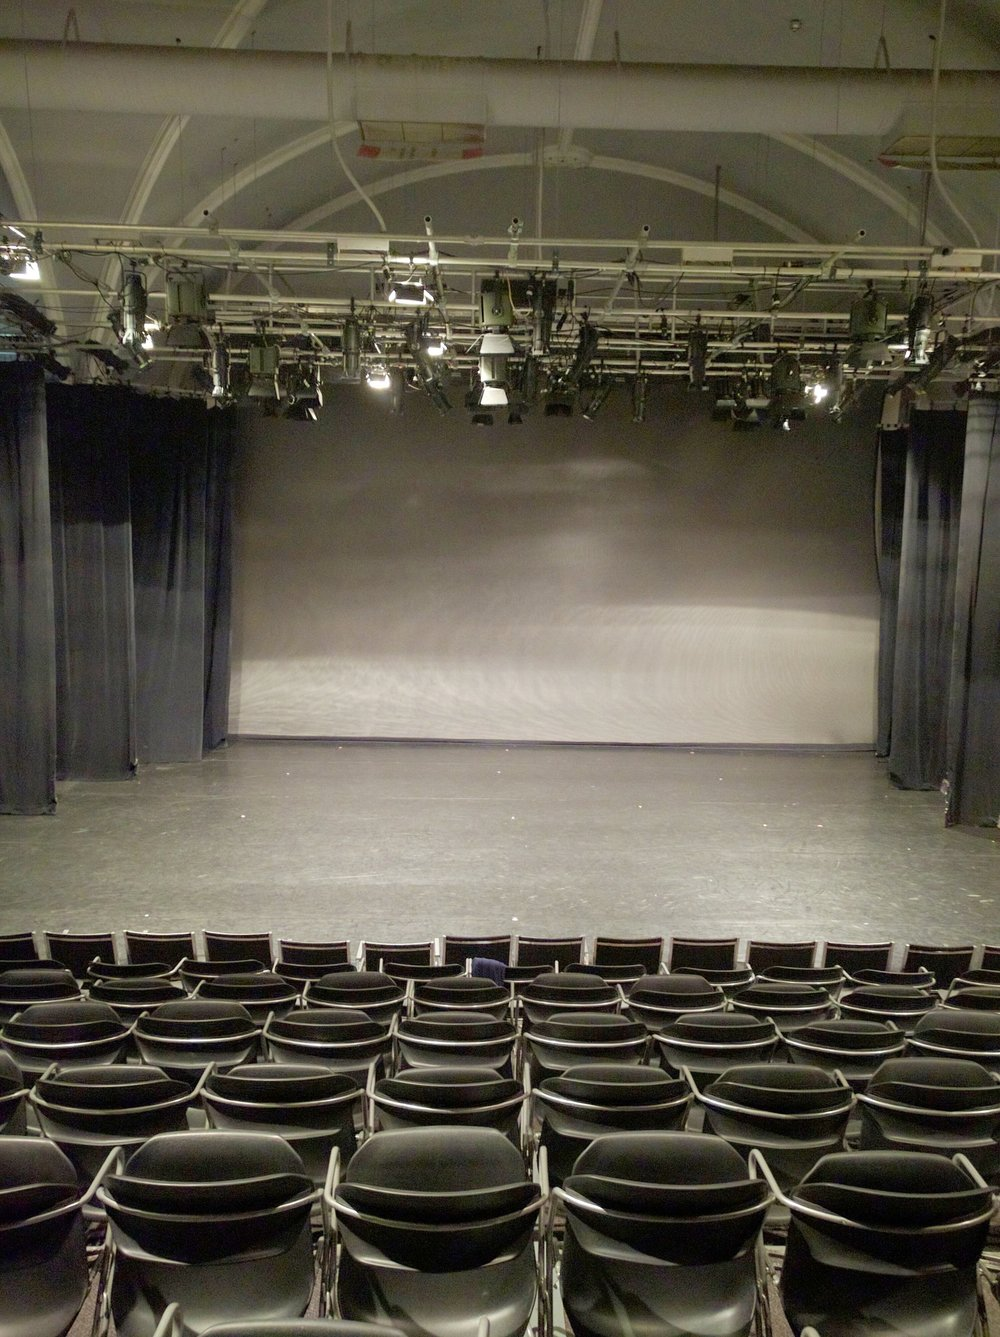 Theatre, Full Masking, with added front row